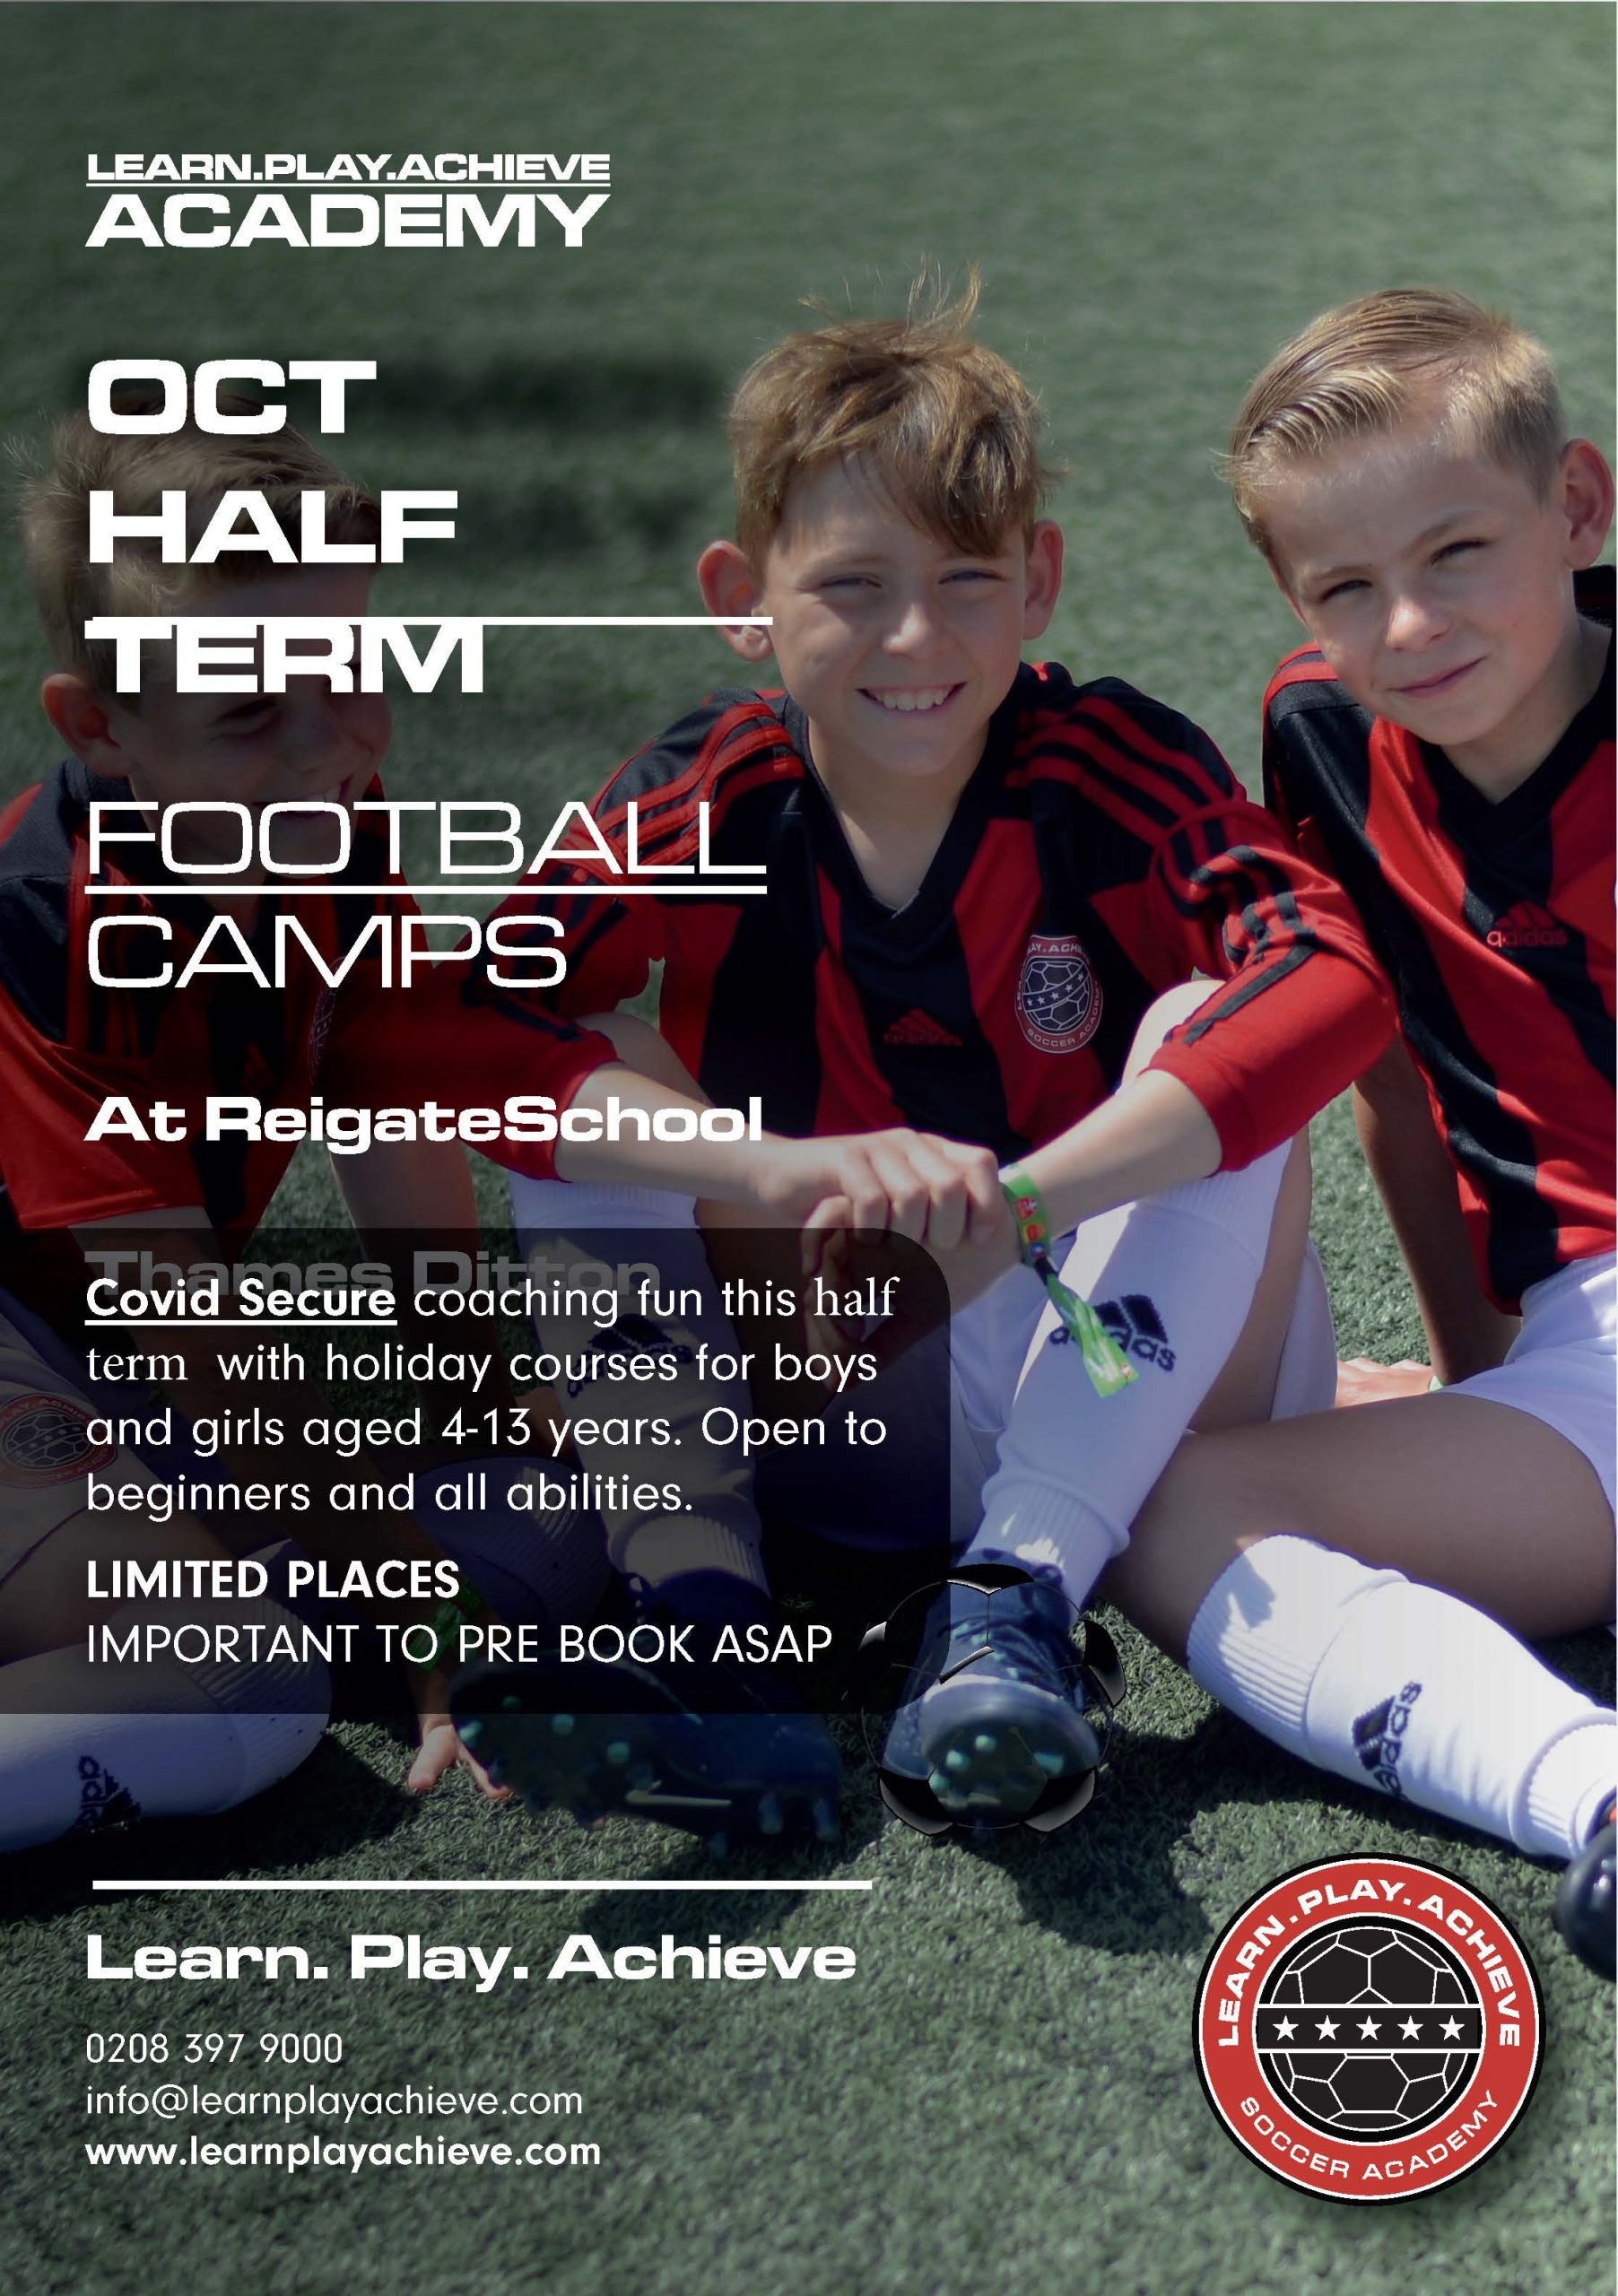 https://www.learnplayachieve.com/wp-content/uploads/2020/10/Reigate-School-Oct-Half-Term-Holiday-Camp_Page_1-scaled.jpg